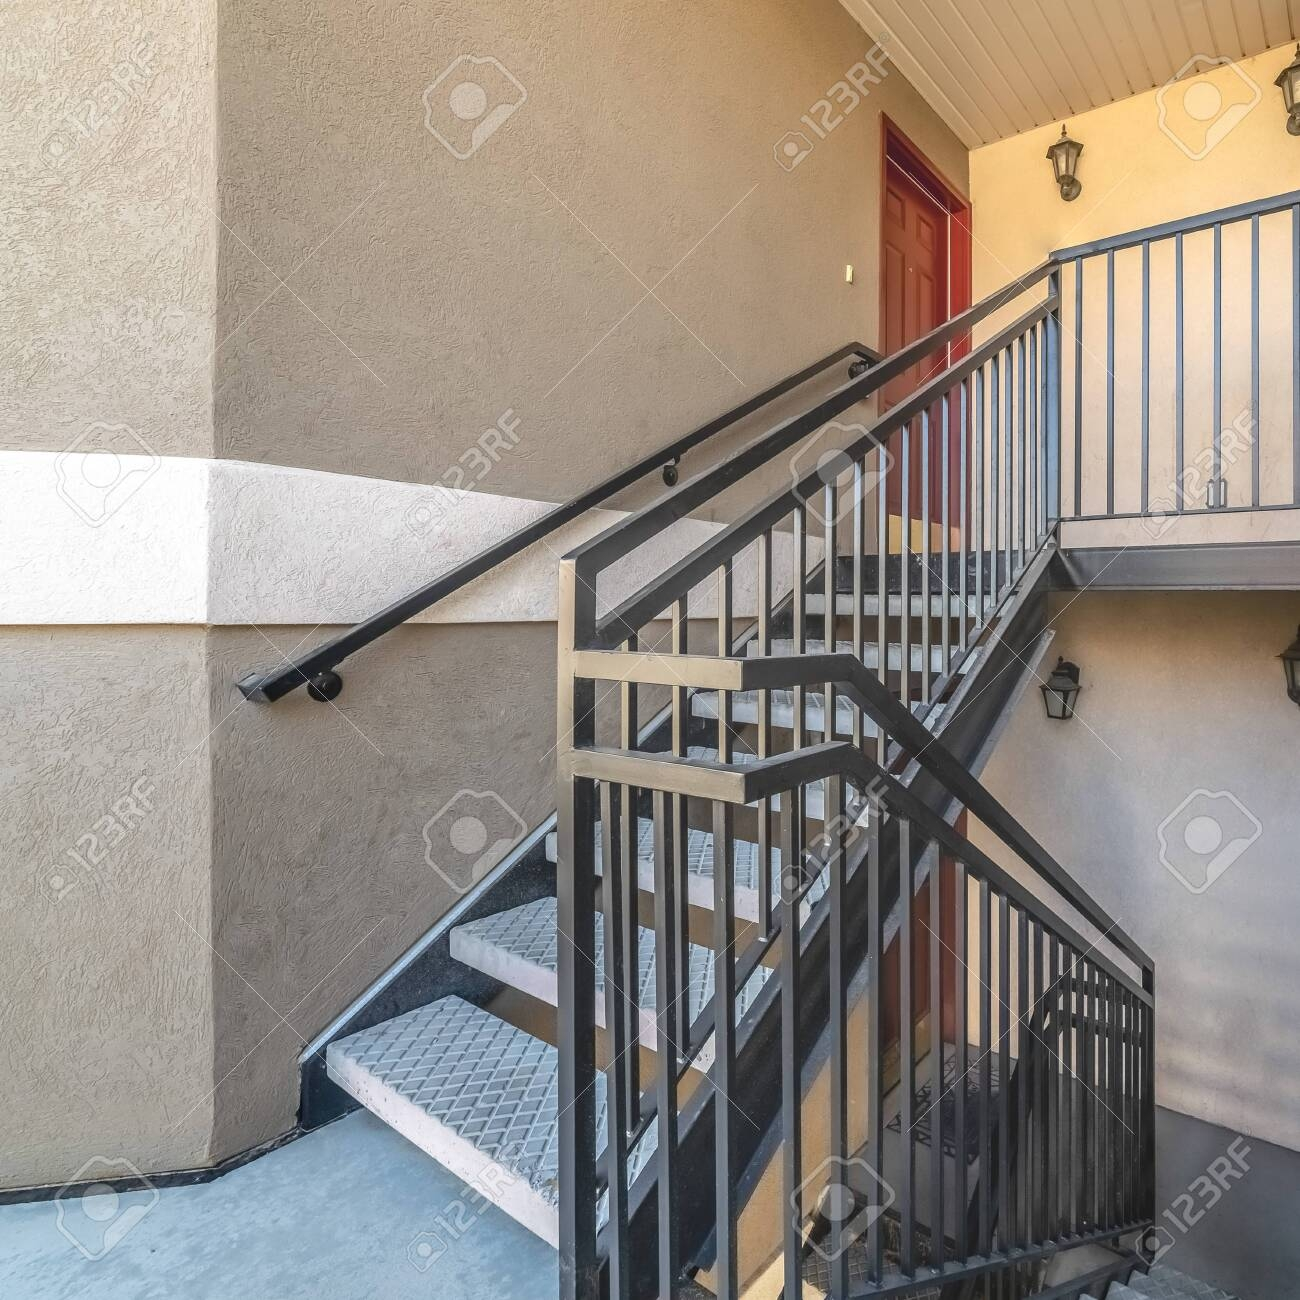 Square Interior Stairs And Landing With Bannister Rail Stock Photo | Bannister Rails For Stairs | Pipe | Build Stair | Deck | Outdoor | 5 Step